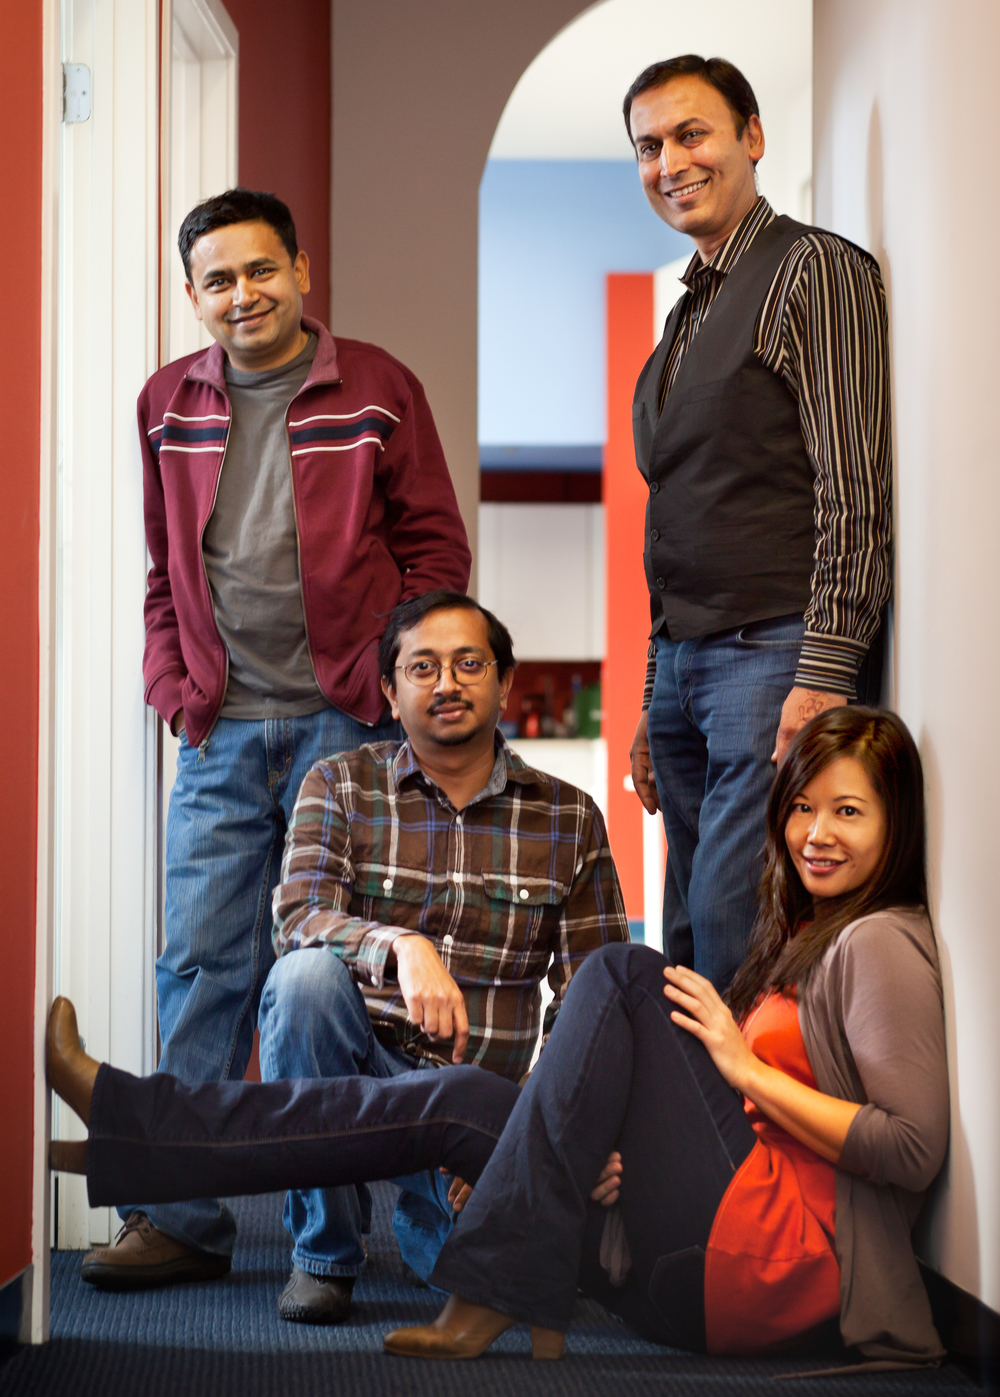 Tracy Sun with her three co-founders, from left to right Chetan Pungaliya, Gautam Golwala and Manish Chandra. Poshmark is headquartered in Silicon Valley.